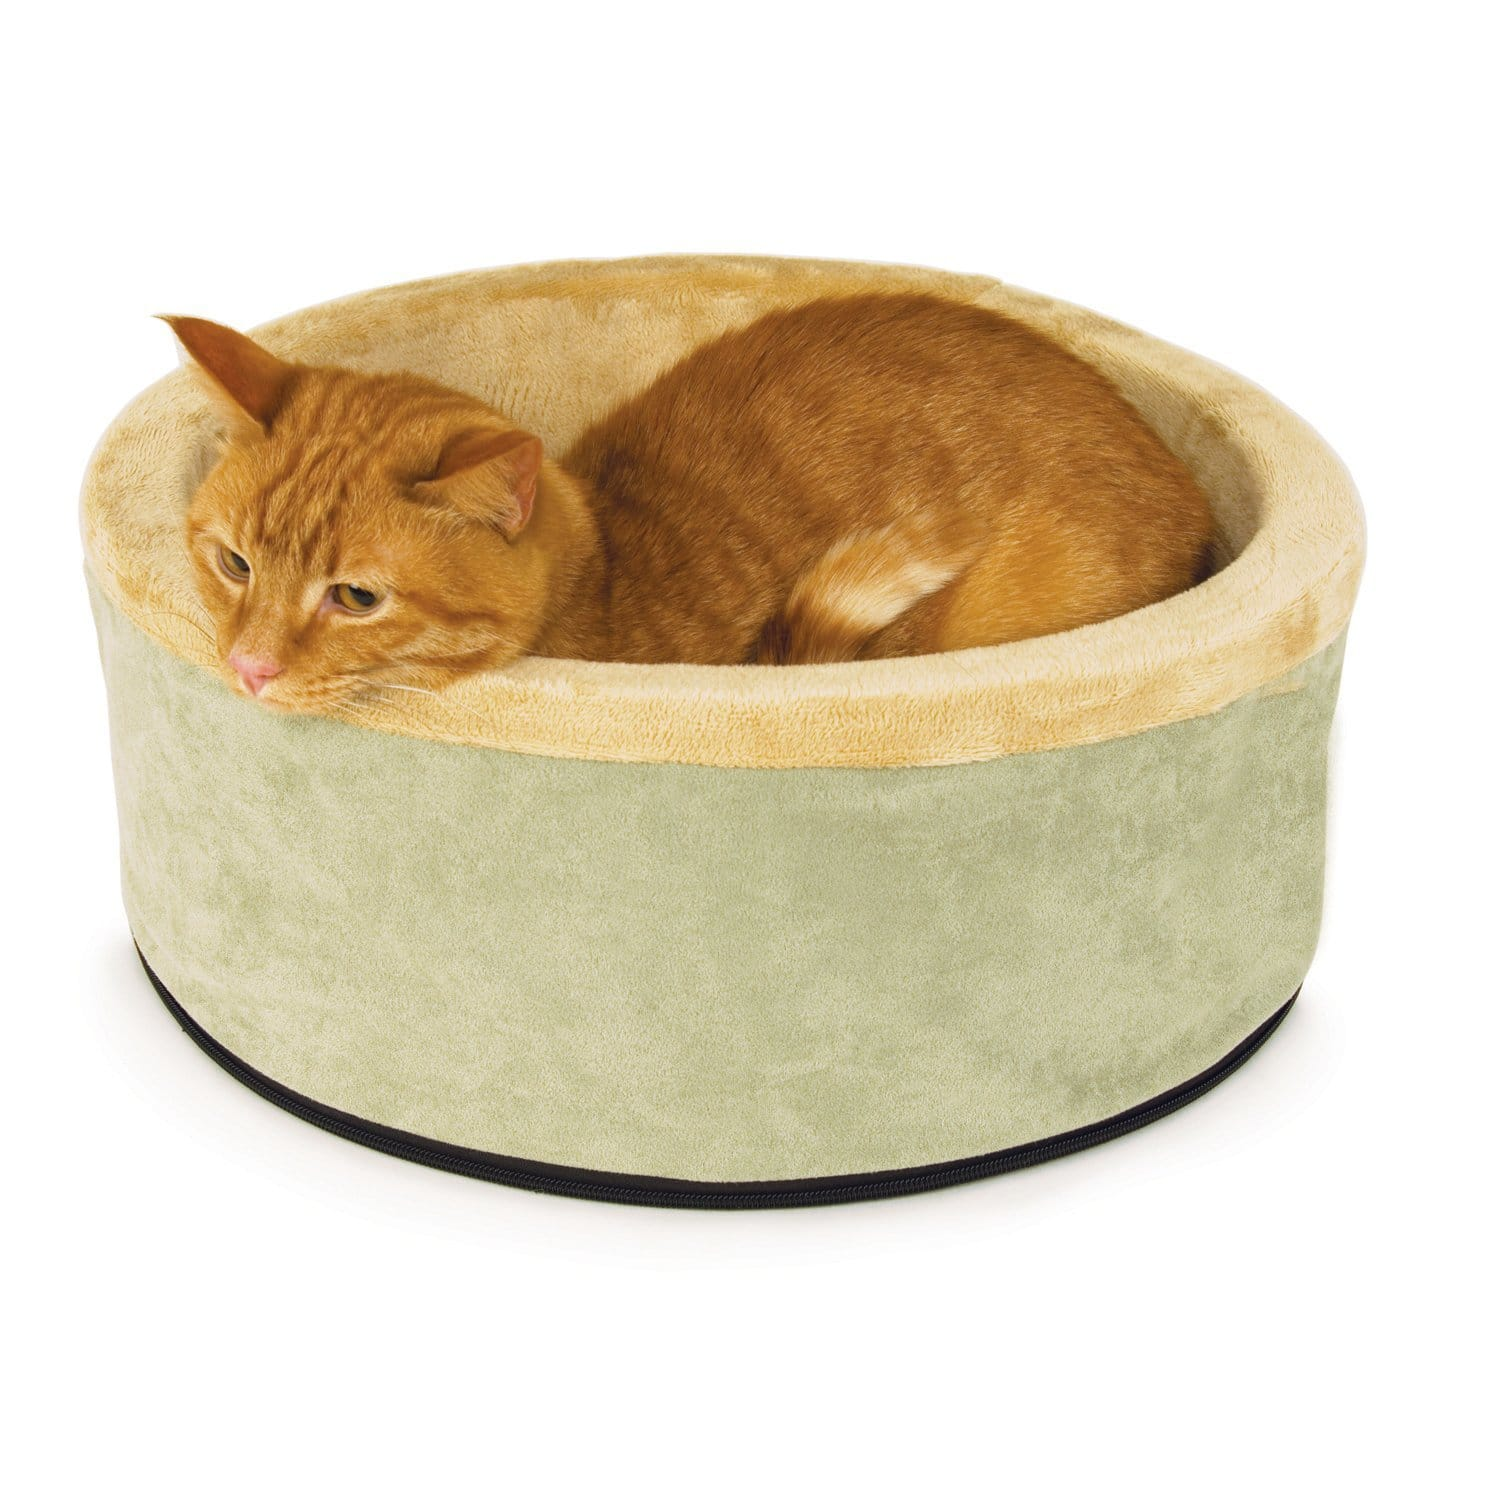 "K&H Thermo-Kitty 16"" Heated Cat Bed (Sage)  $21"